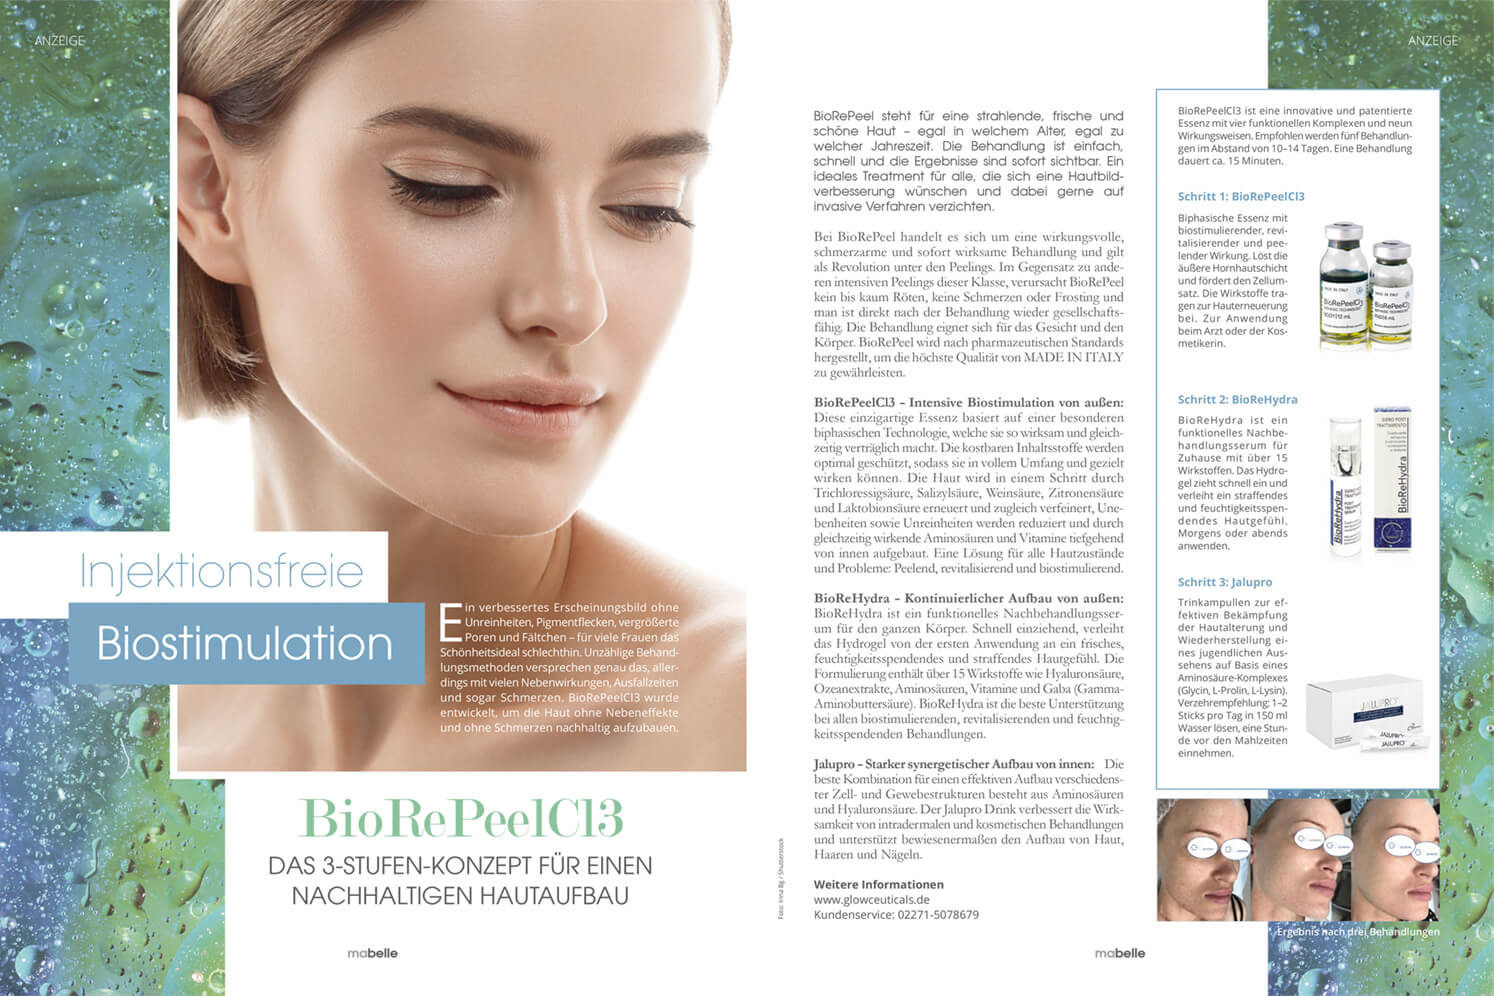 BioRePeel Treatment Bio Peeling TCA Glowceuticals Kosmetik Biostimulation Kollagen